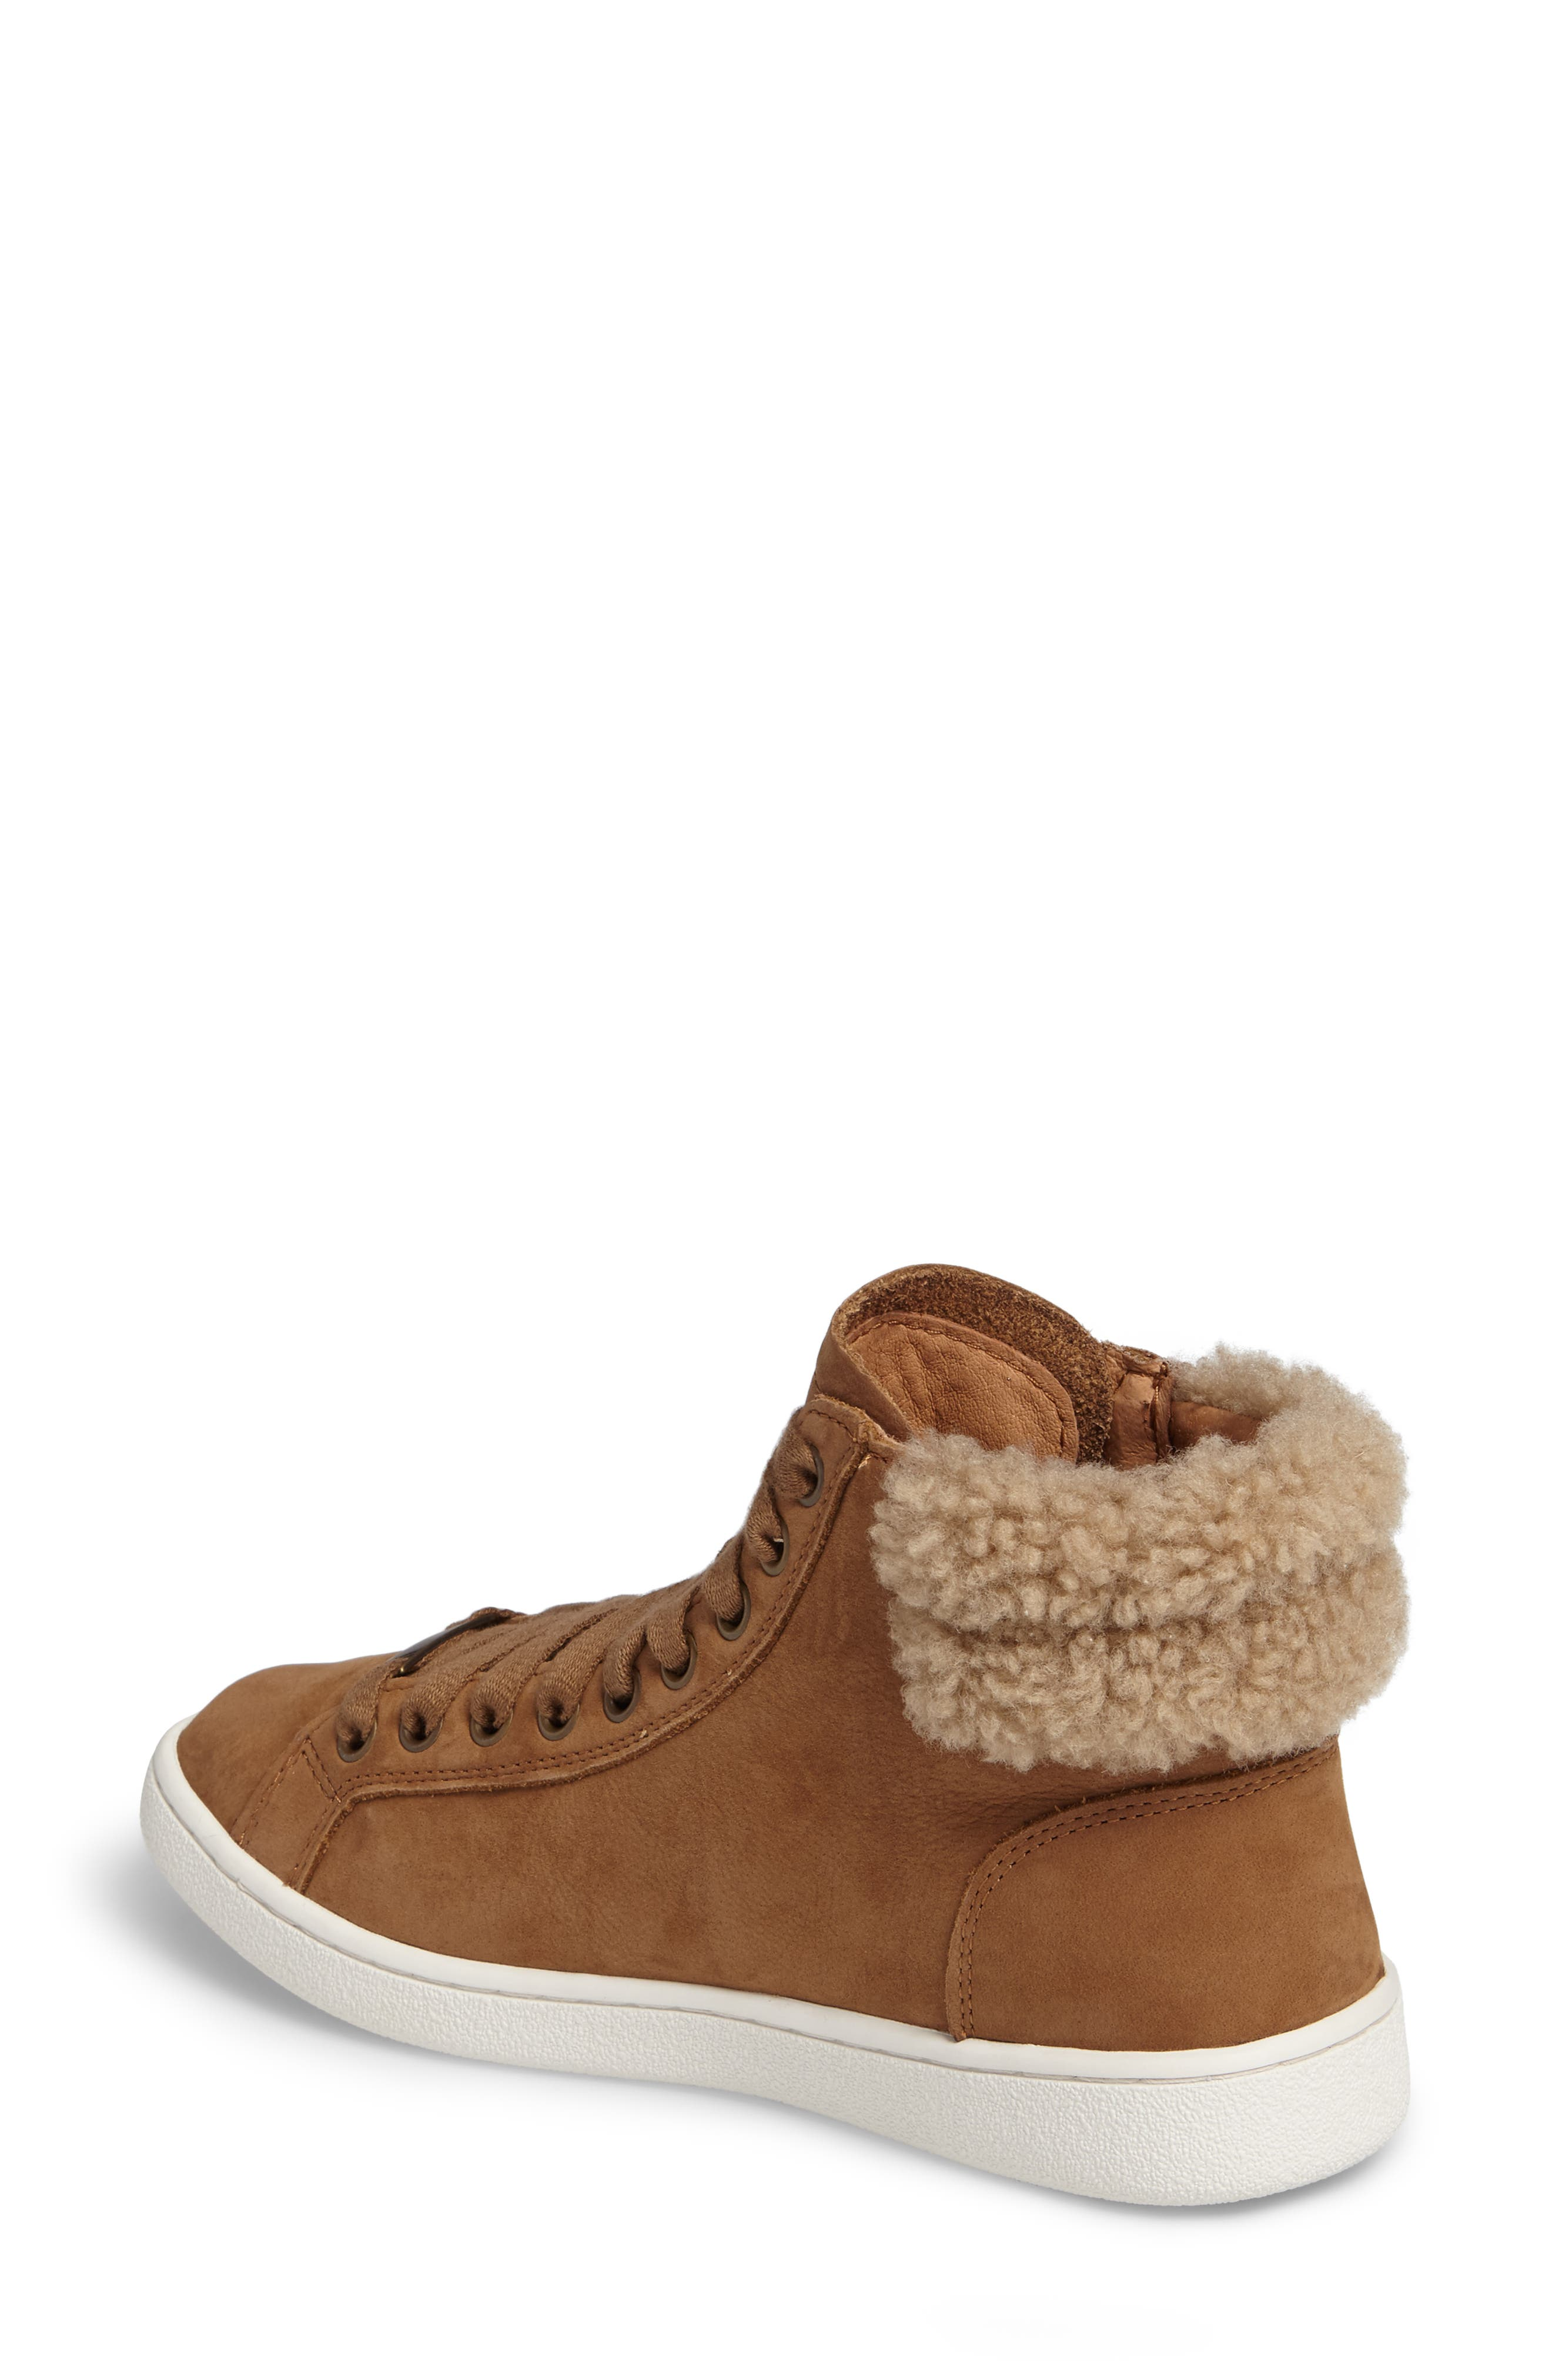 Olive Genuine Shearling Cuff Sneaker,                             Alternate thumbnail 2, color,                             219